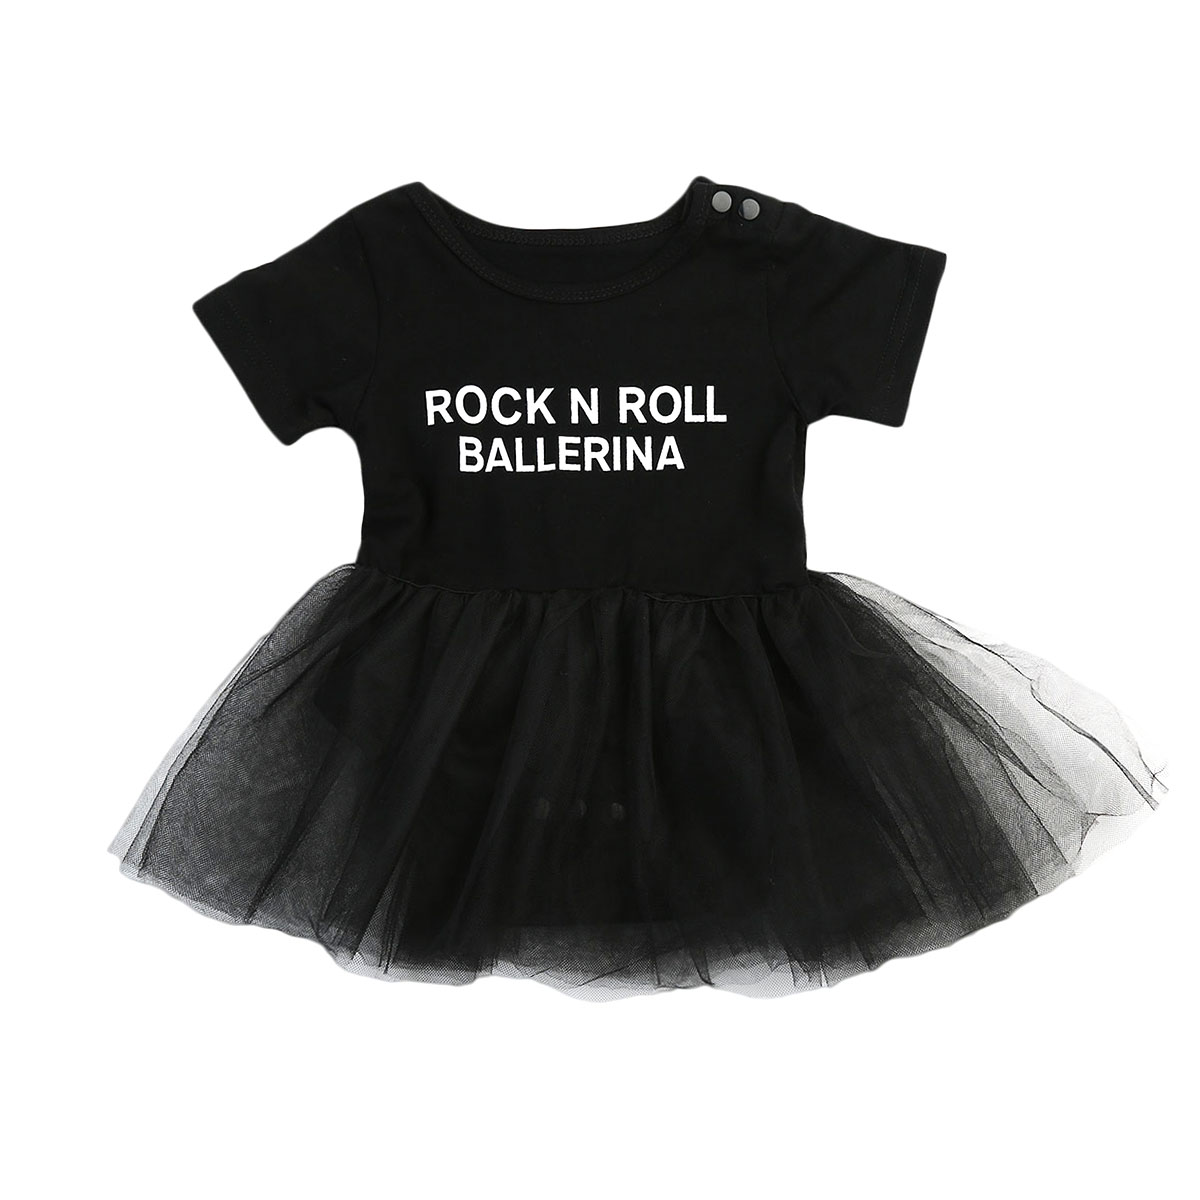 Letter Print Infant Baby Girl Tulle Rock N Roll Romper Dress Outfit Set